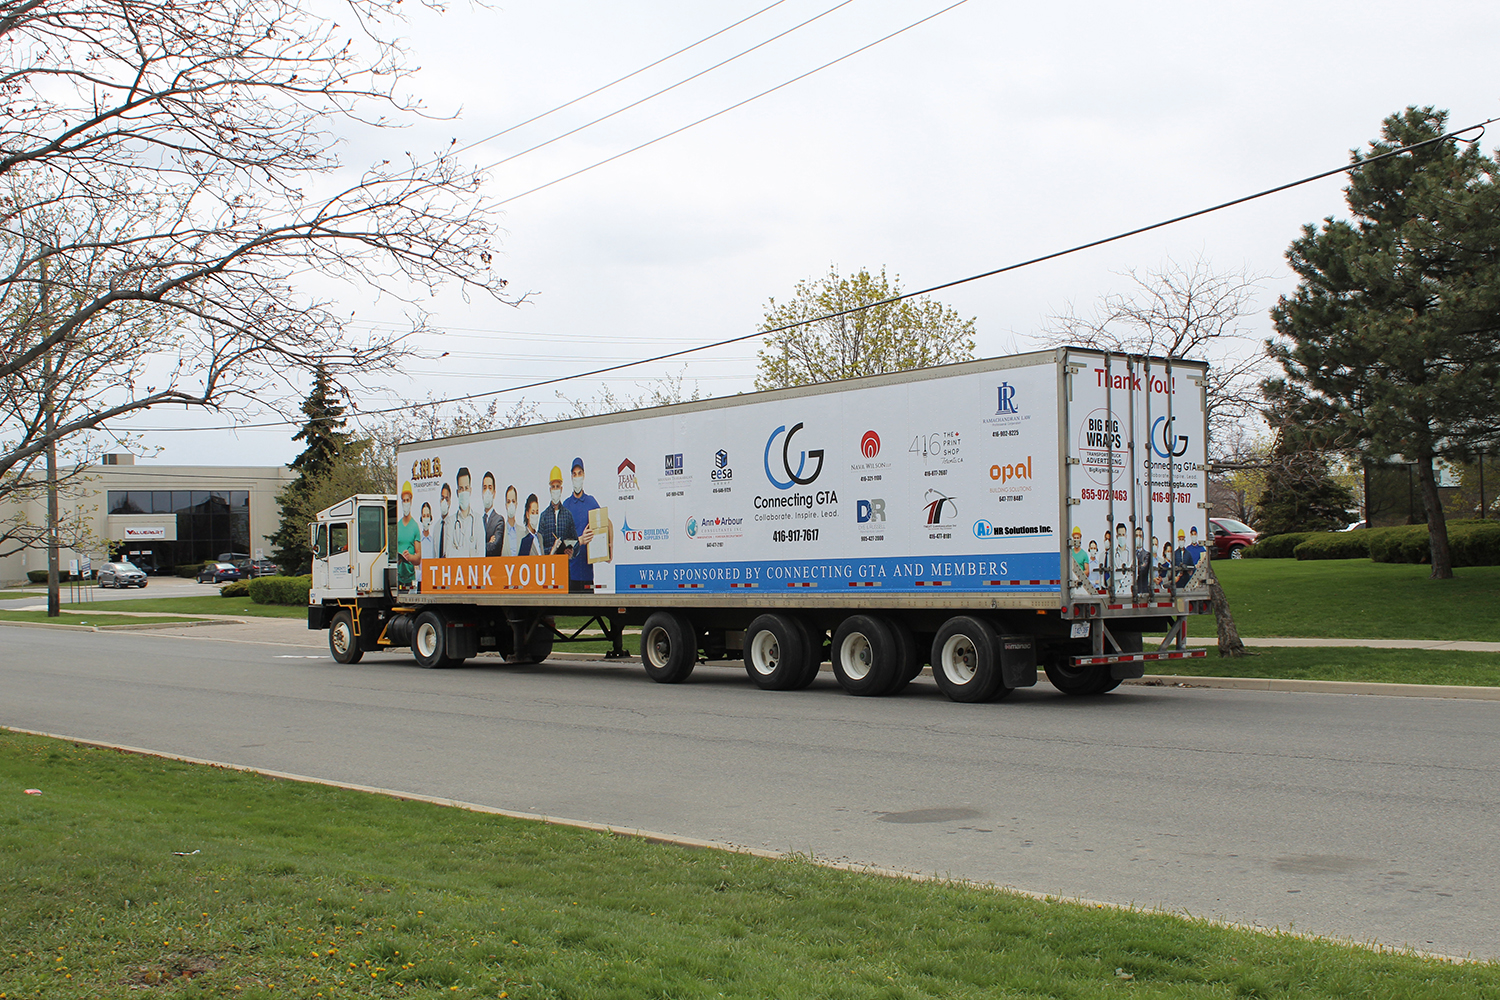 Connecting GTA's 'Covid-19 Truck' to thank all the front line workers